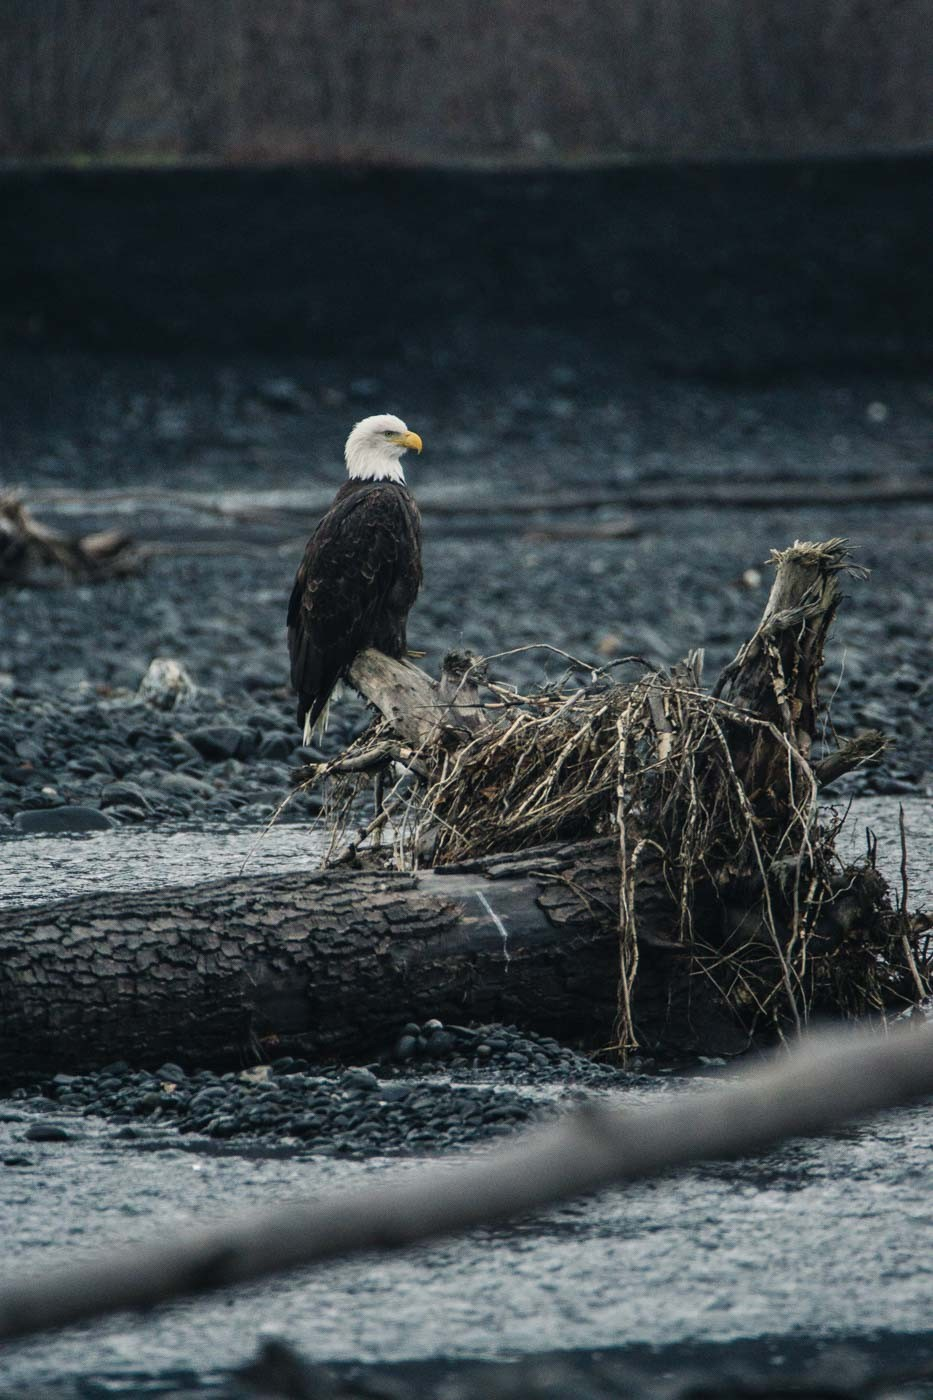 Bald Eagle in Alaska with the Tamron 150-600mm f/5-6.3